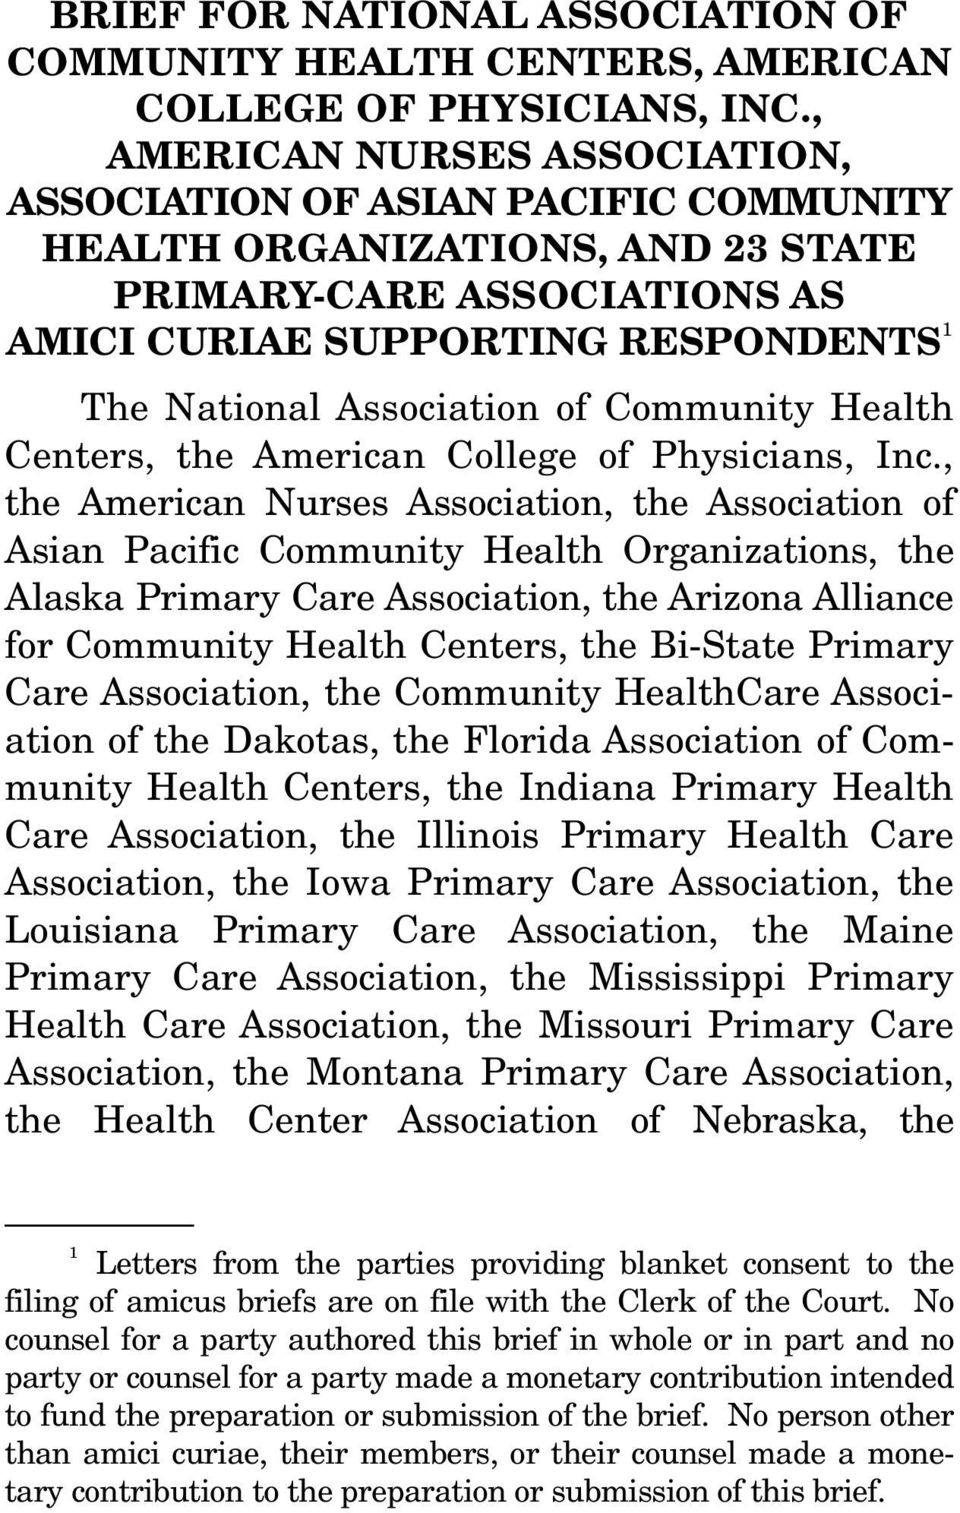 Community Health Centers, the American College of Physicians, Inc.